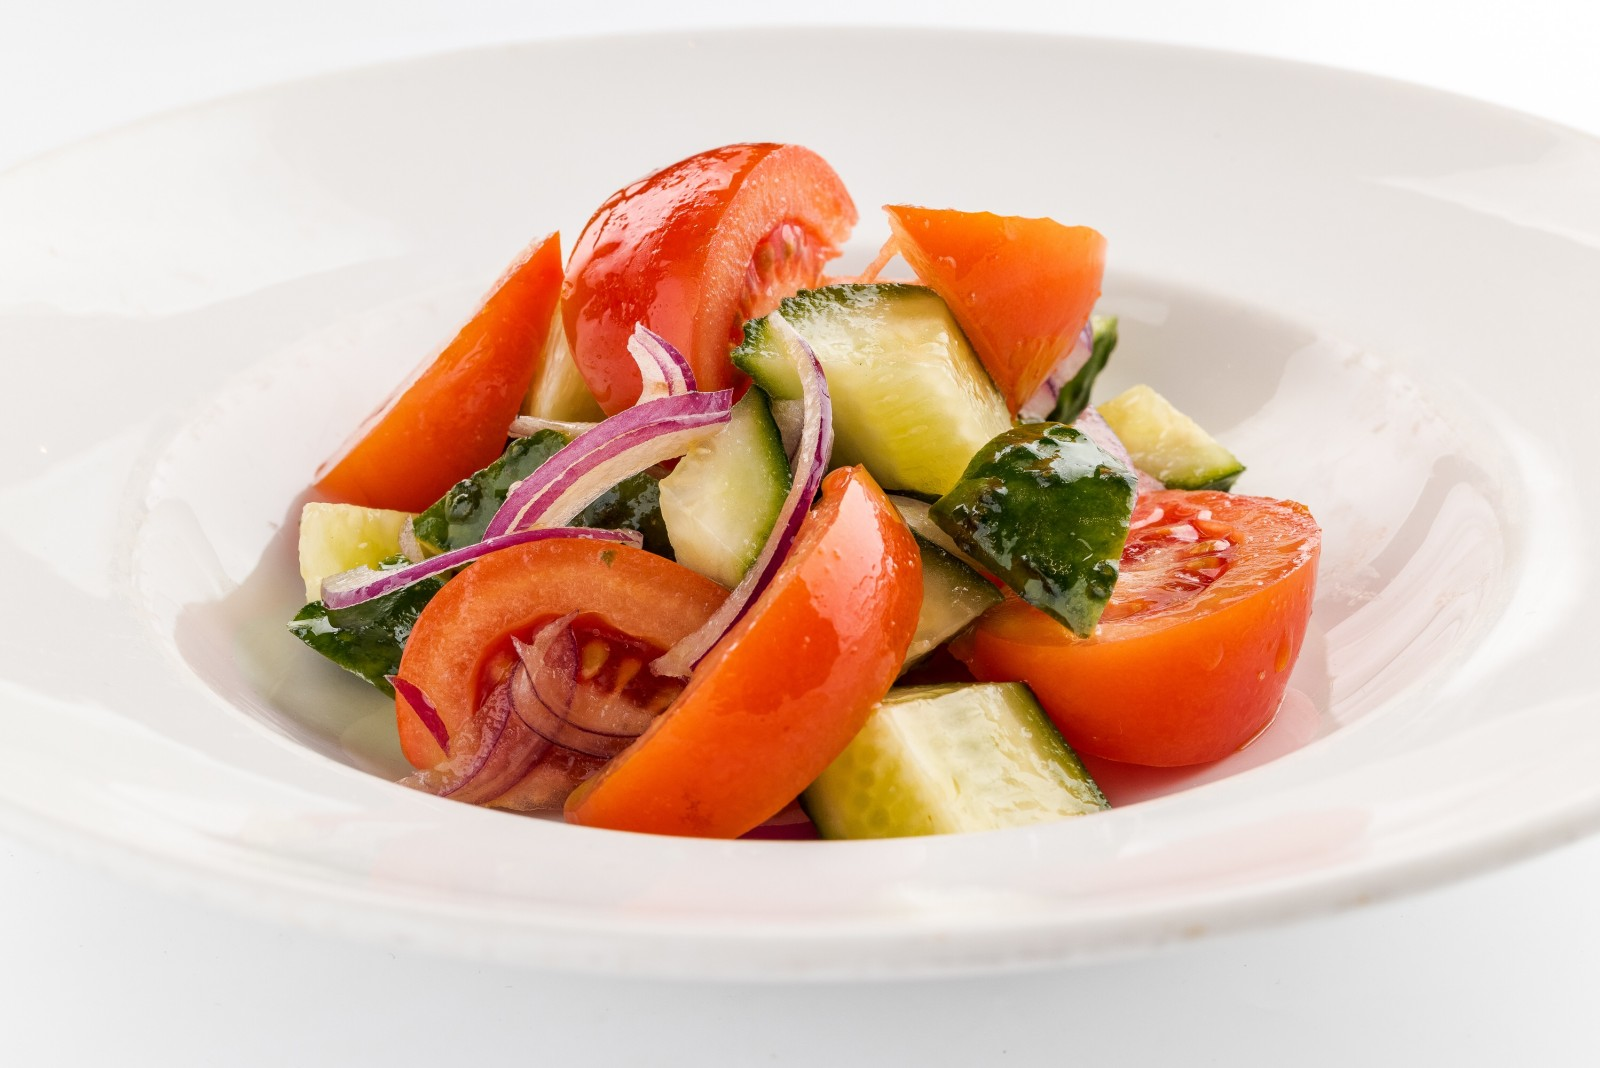 Vegetable salad with dressing